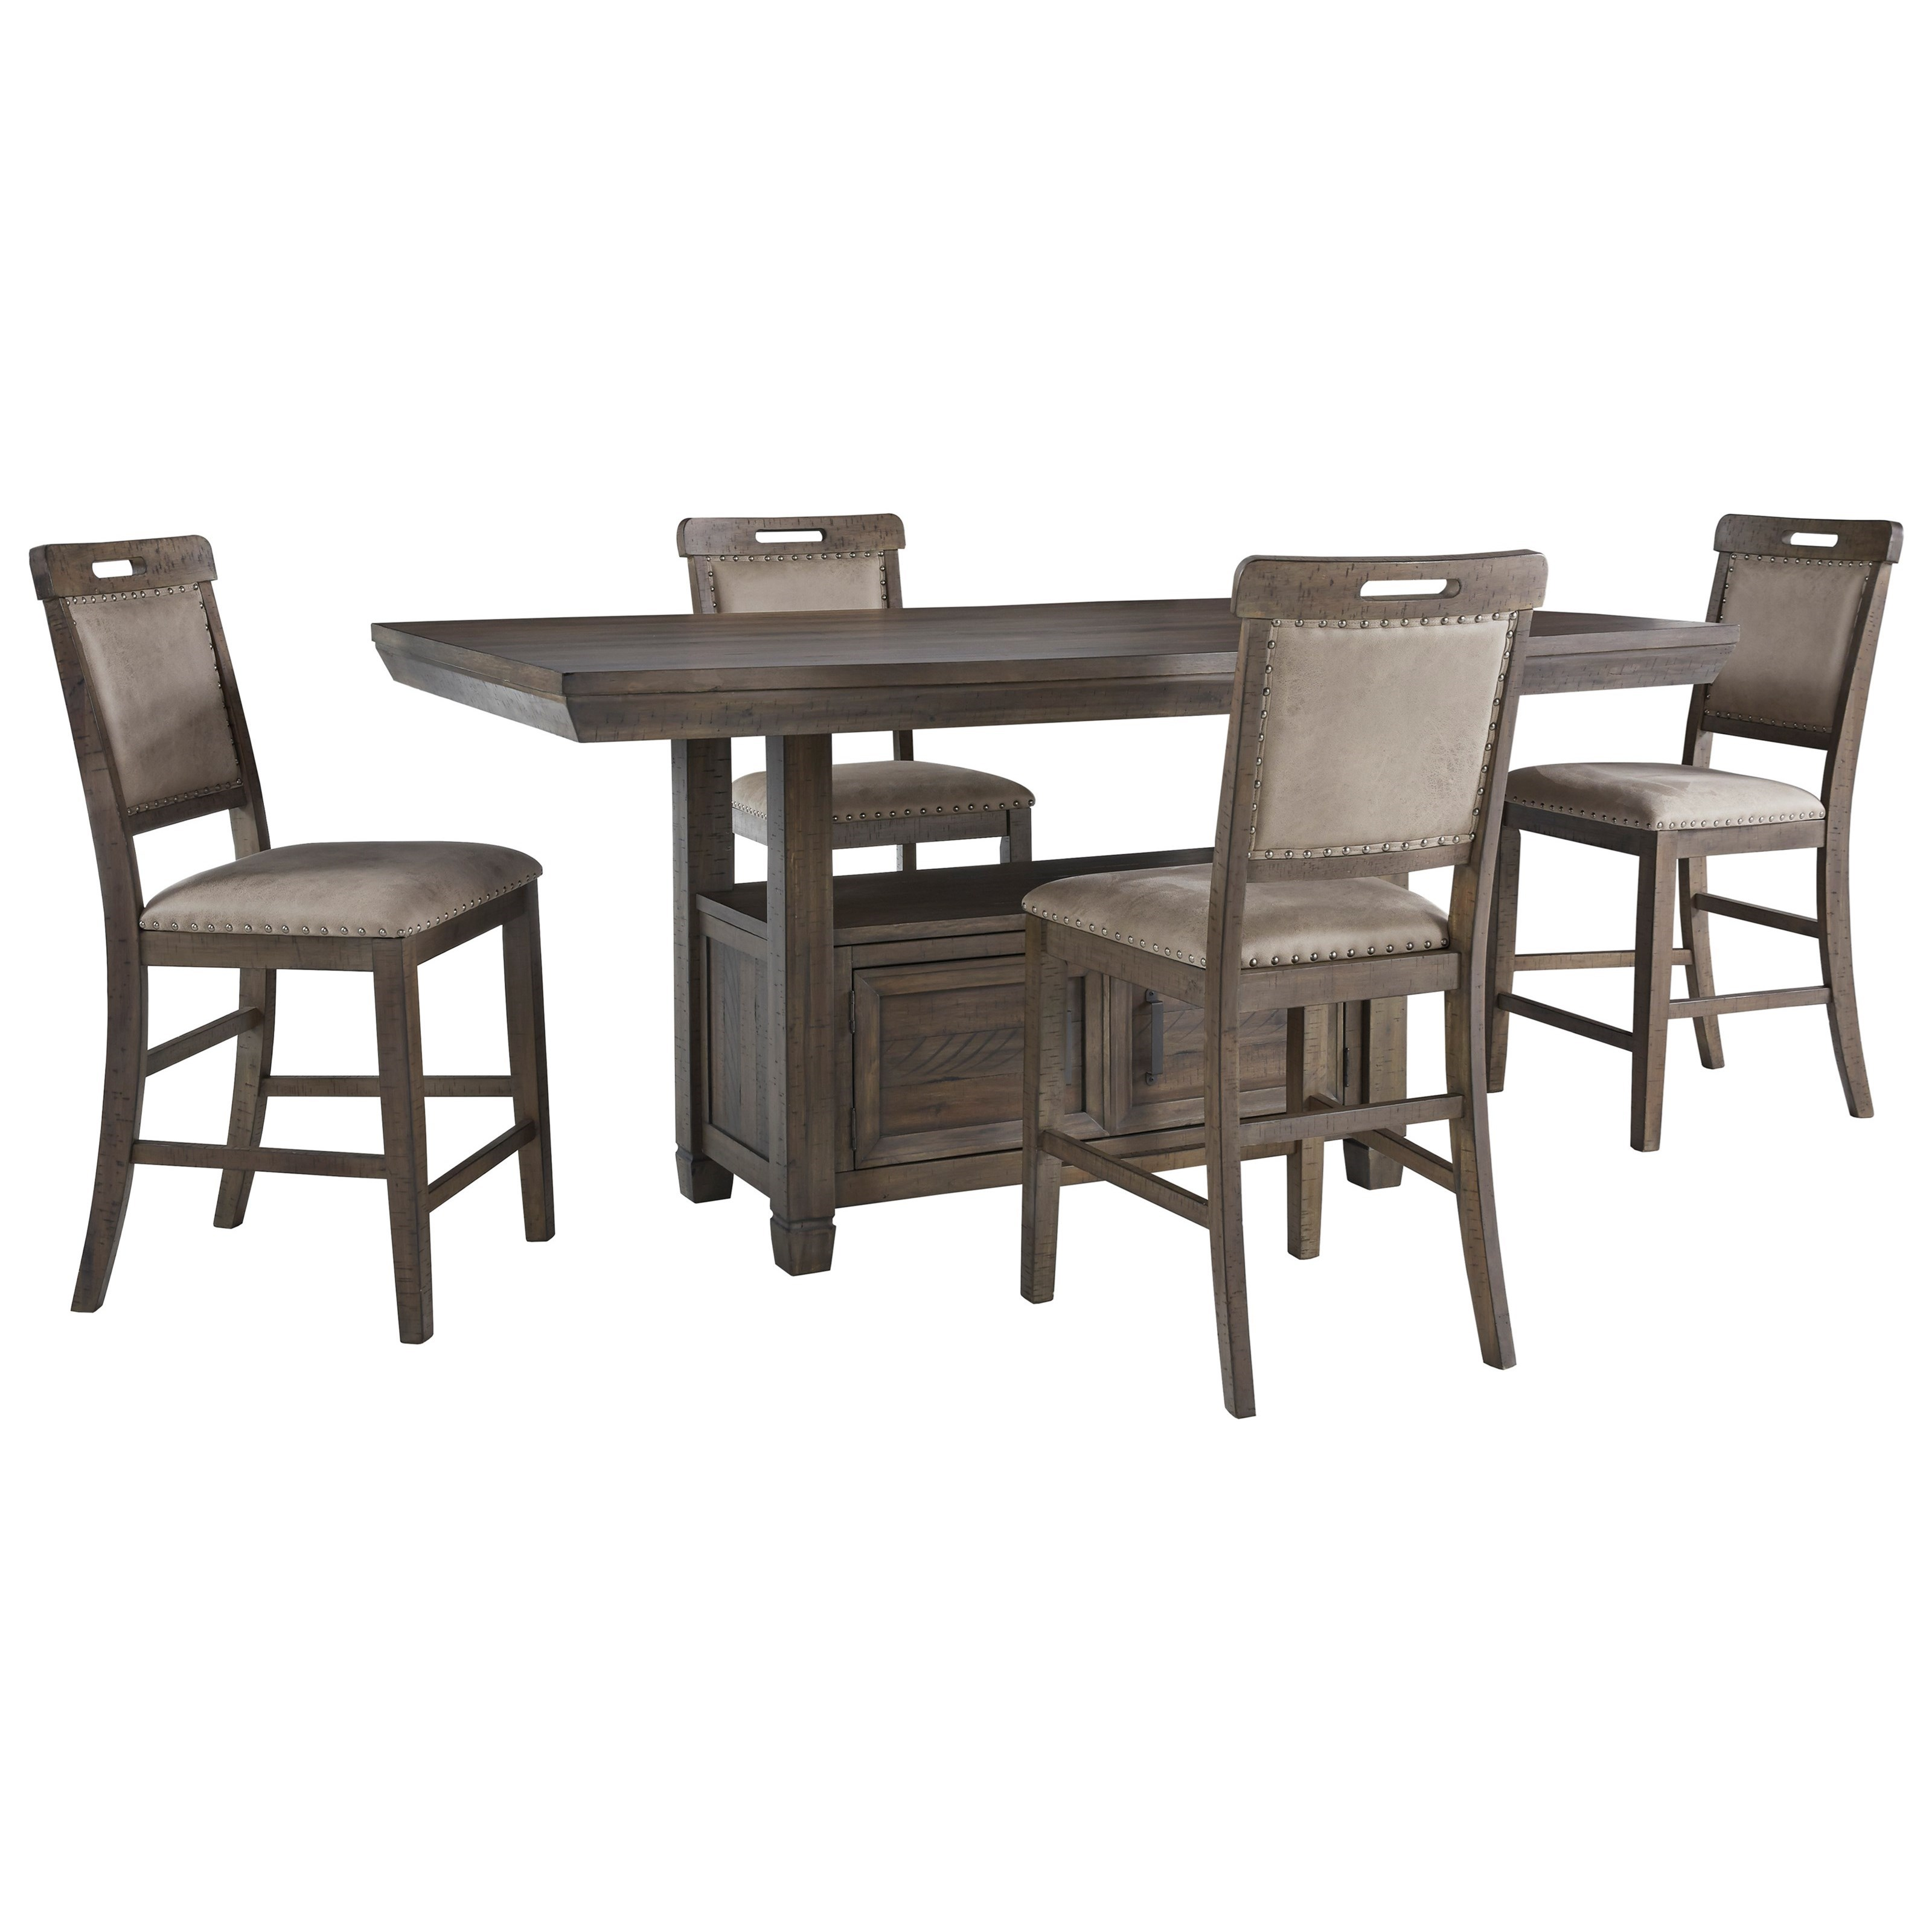 Johurst 5-Piece Counter Height Dining Set by Benchcraft at Zak's Warehouse Clearance Center